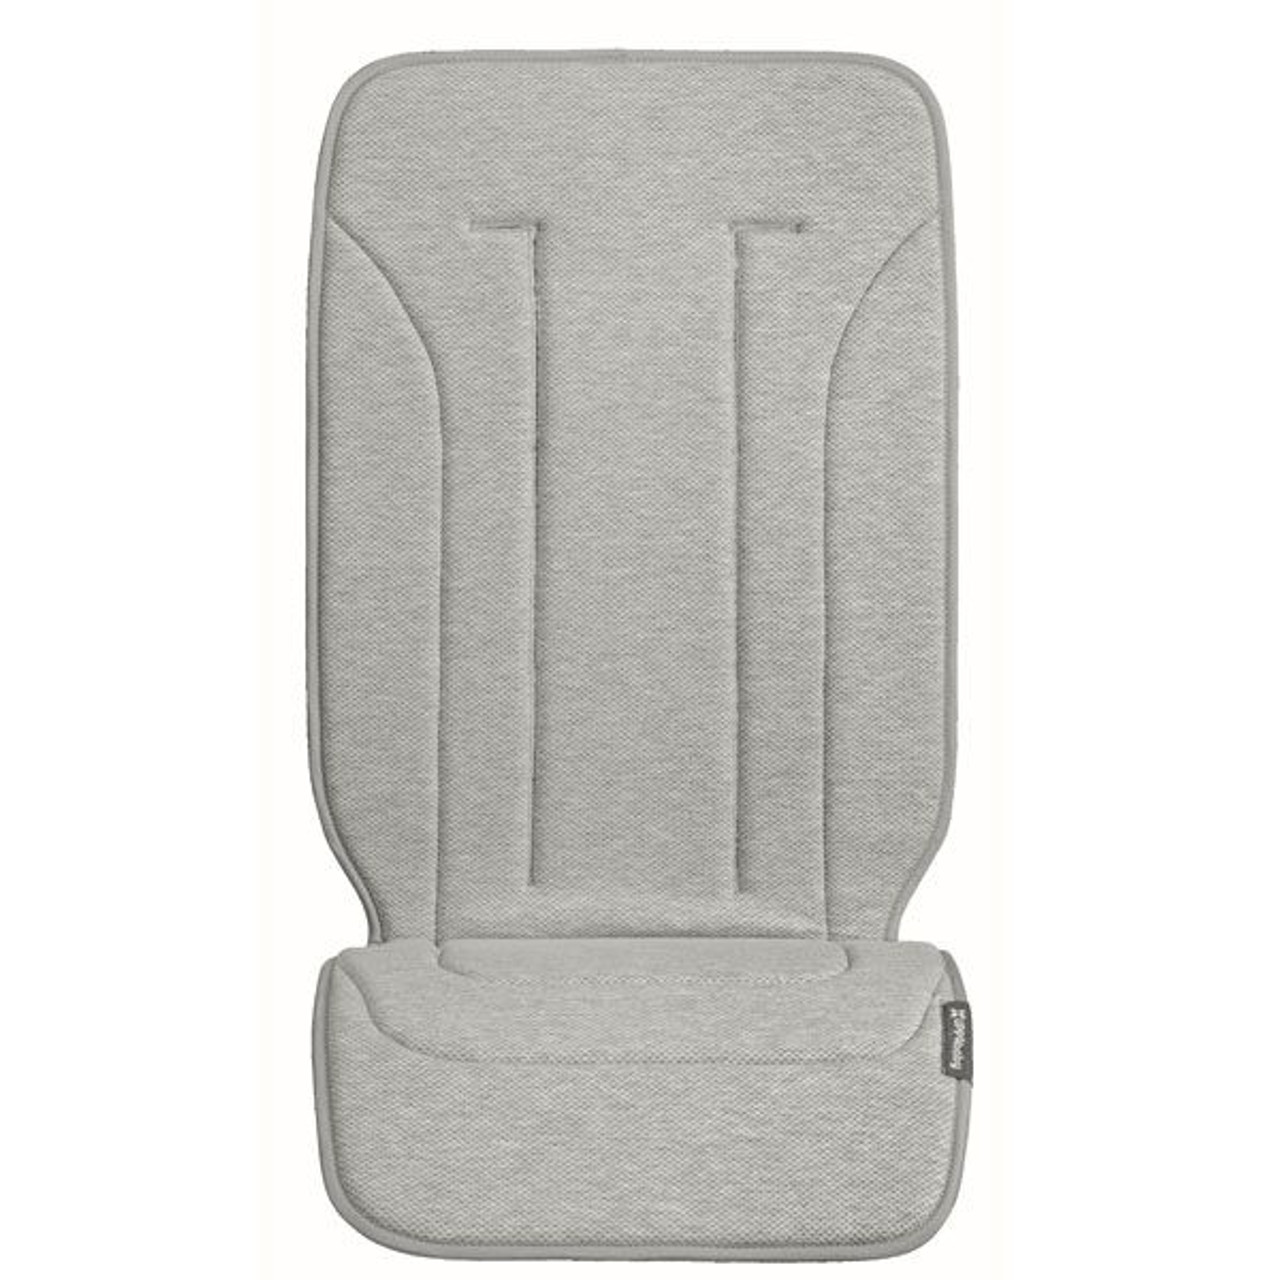 Uppababy Reversible Seat Liner (Phoebe) at Baby Barn Discounts UPPAbaby Reversible Pram Liners shield your stroller from messes and spills.